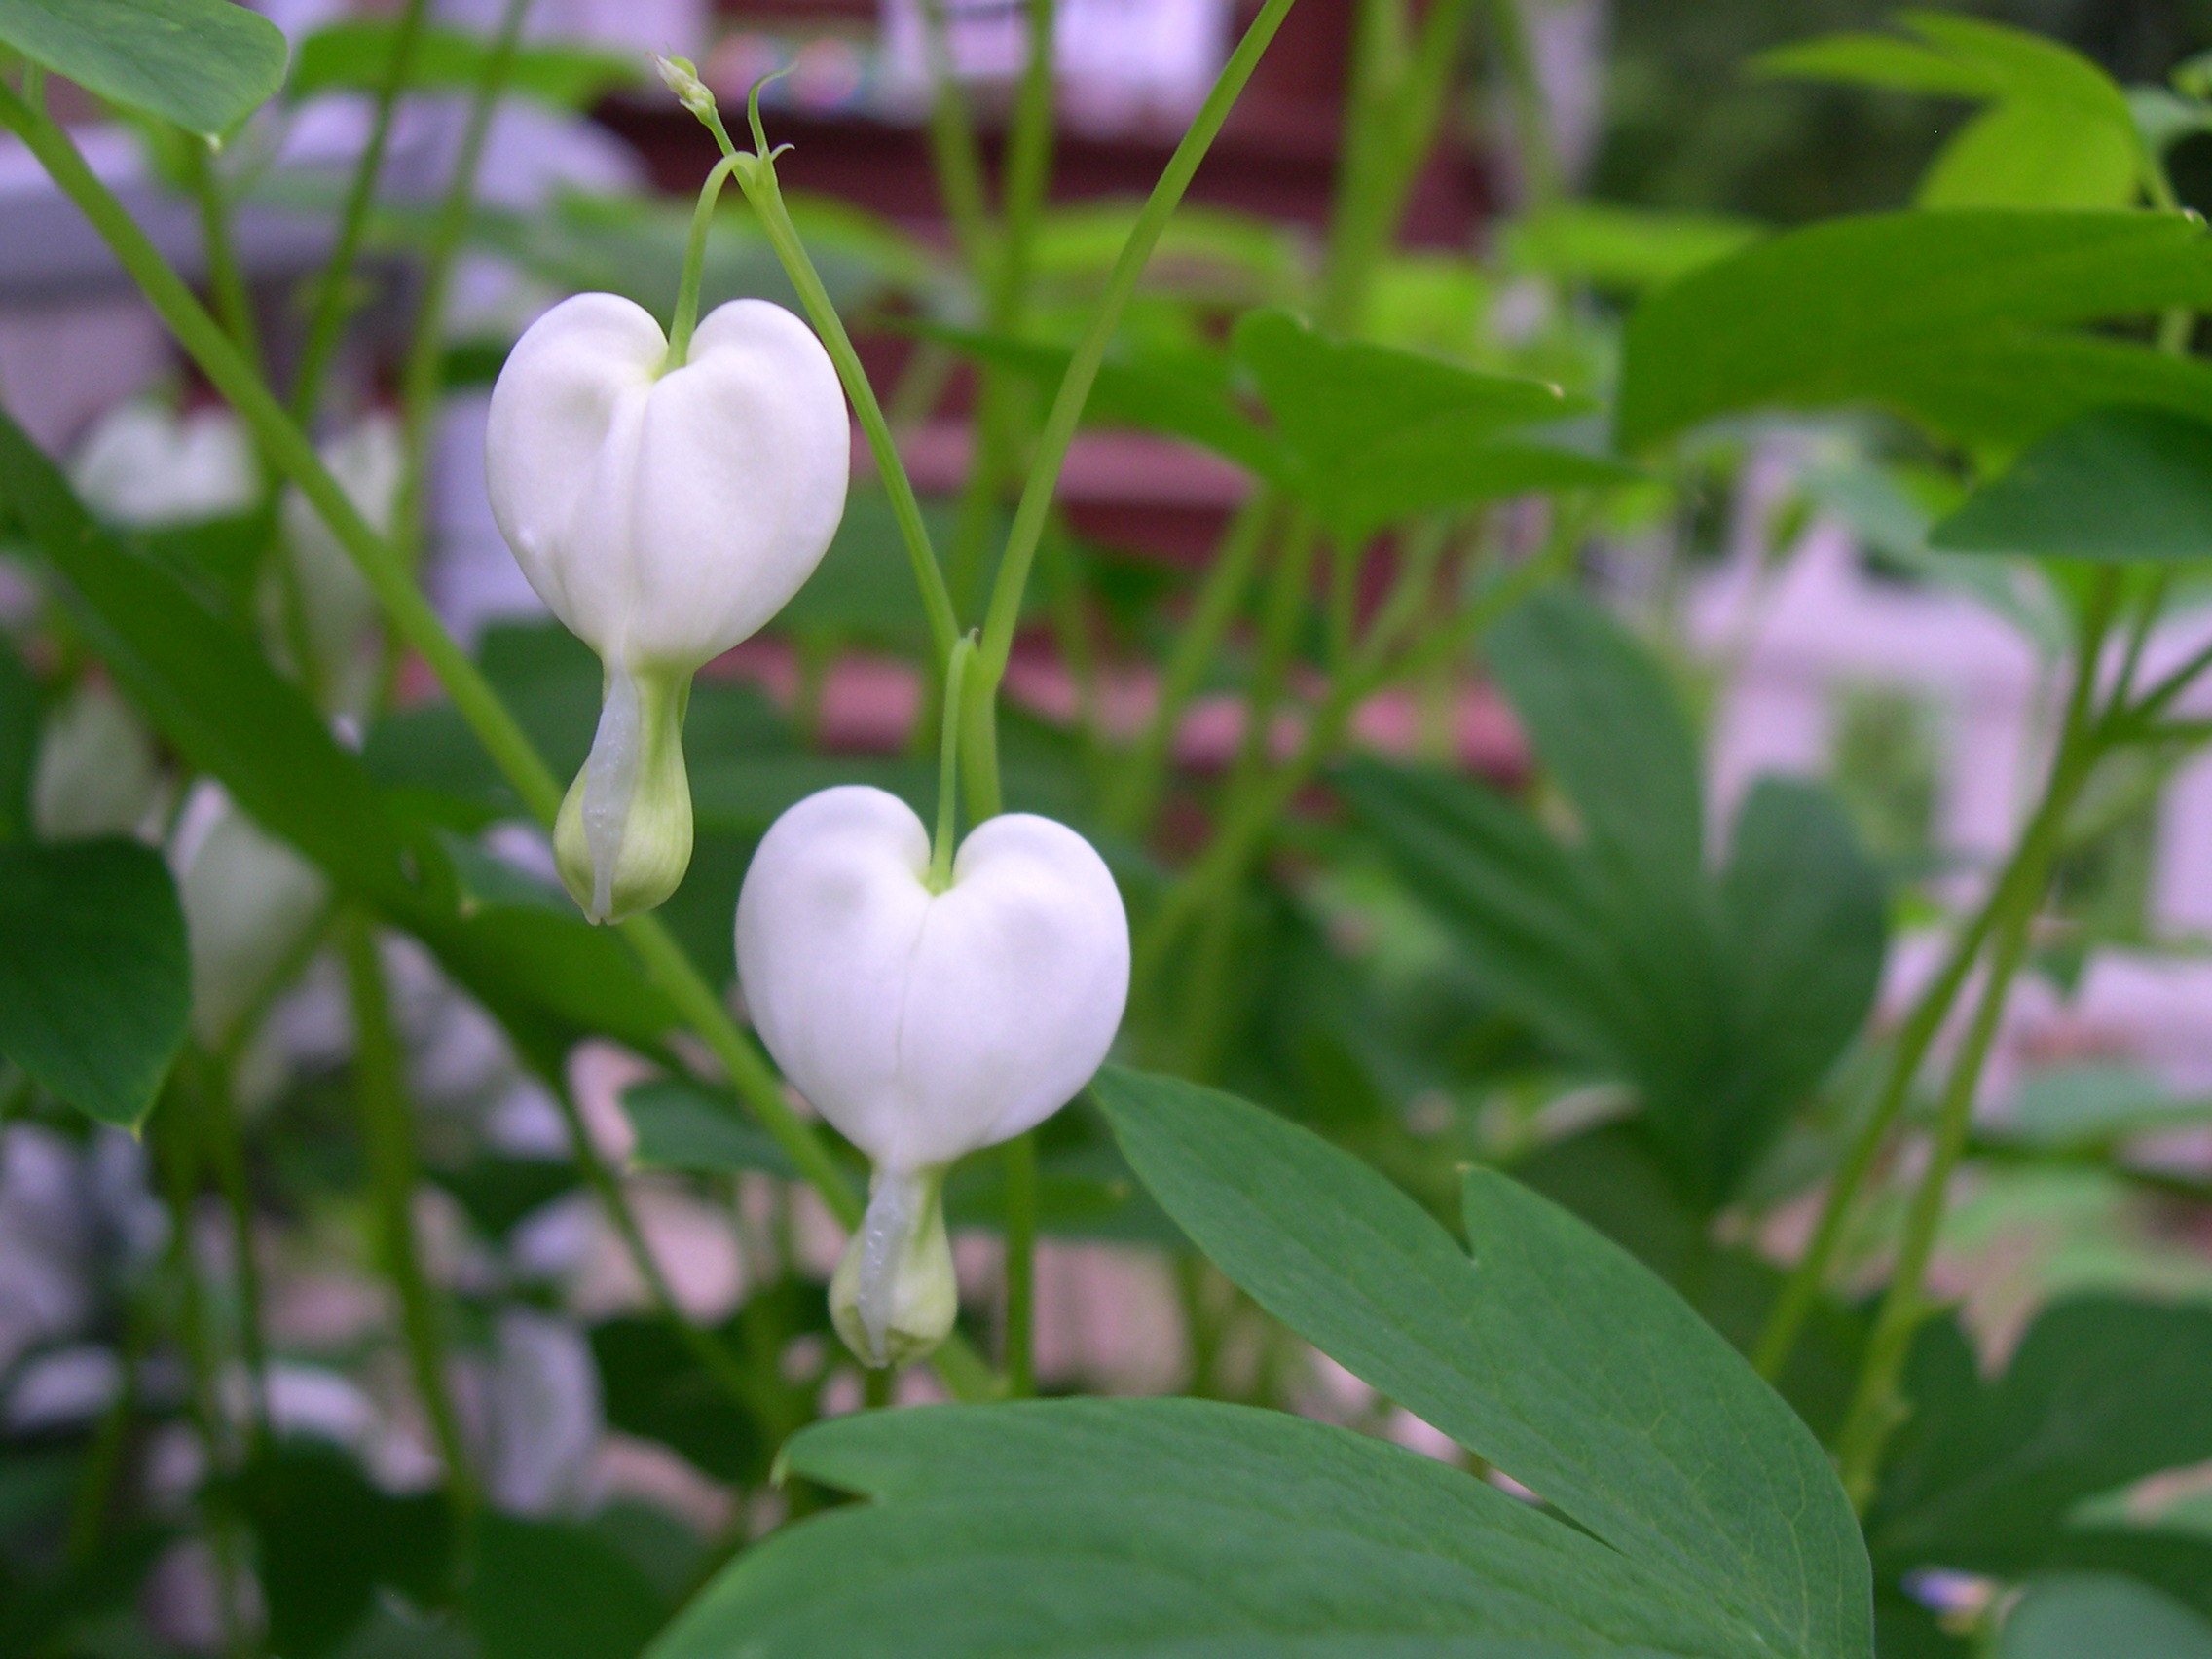 Bleeding Heart Flower White Flowers of The Bleeding